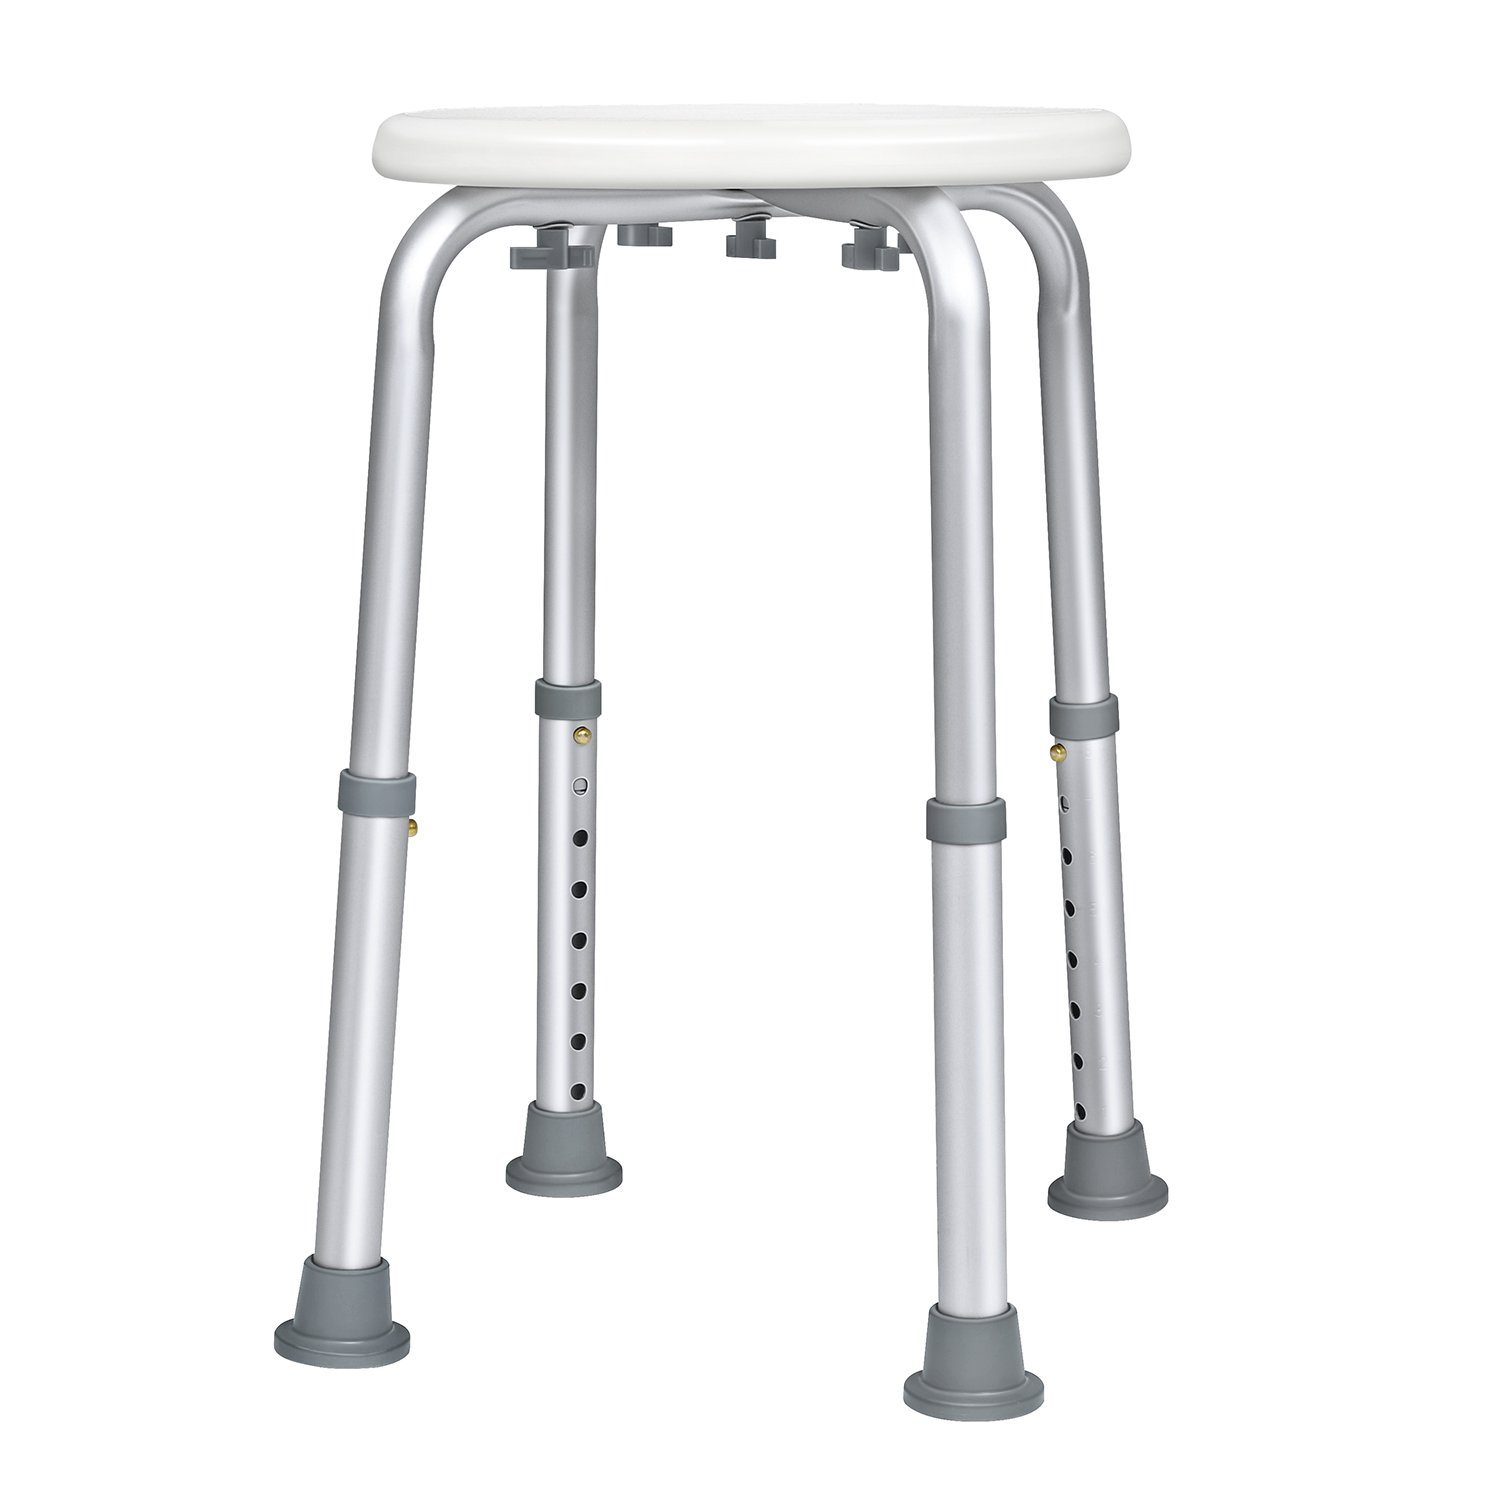 Bath chair for seniors - Amazon Com Jcmaster Bathtub Shower Stool For Handicapped And Seniors Lightweight Bath Chair Round Health Personal Care